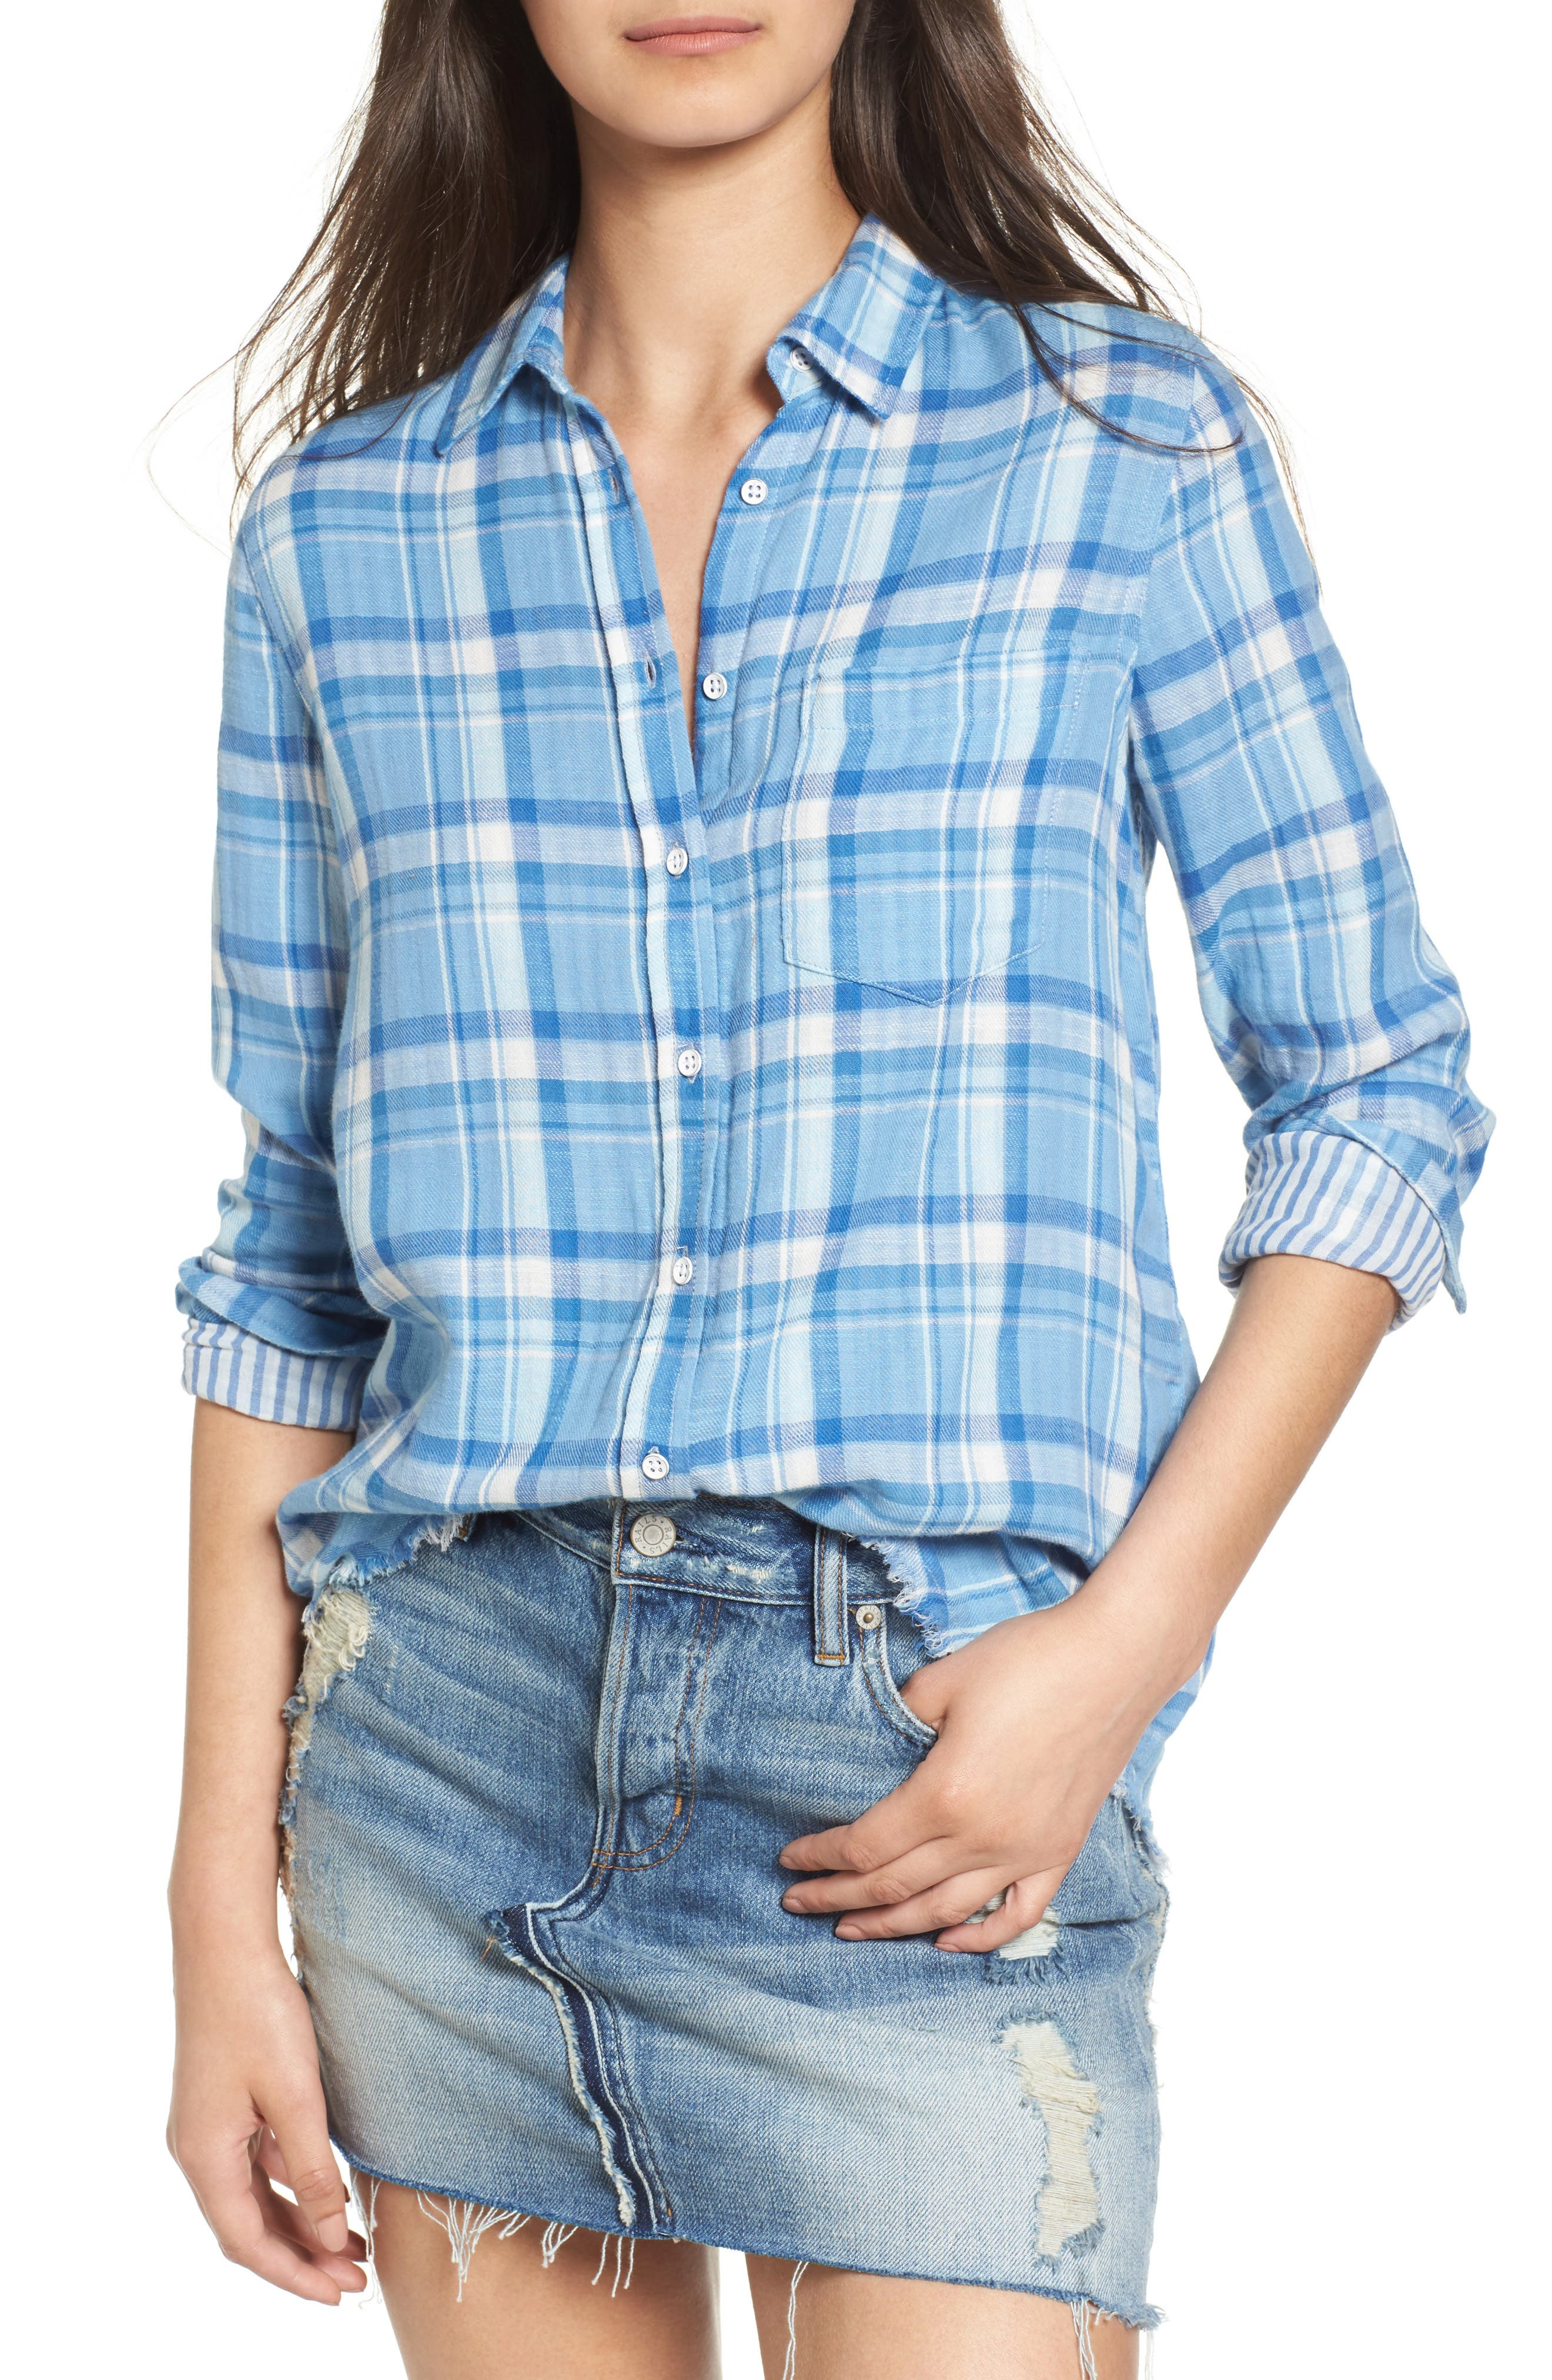 Mercer & Spring Frayed Shirt,                         Main,                         color, Blue Double Faced Plaid